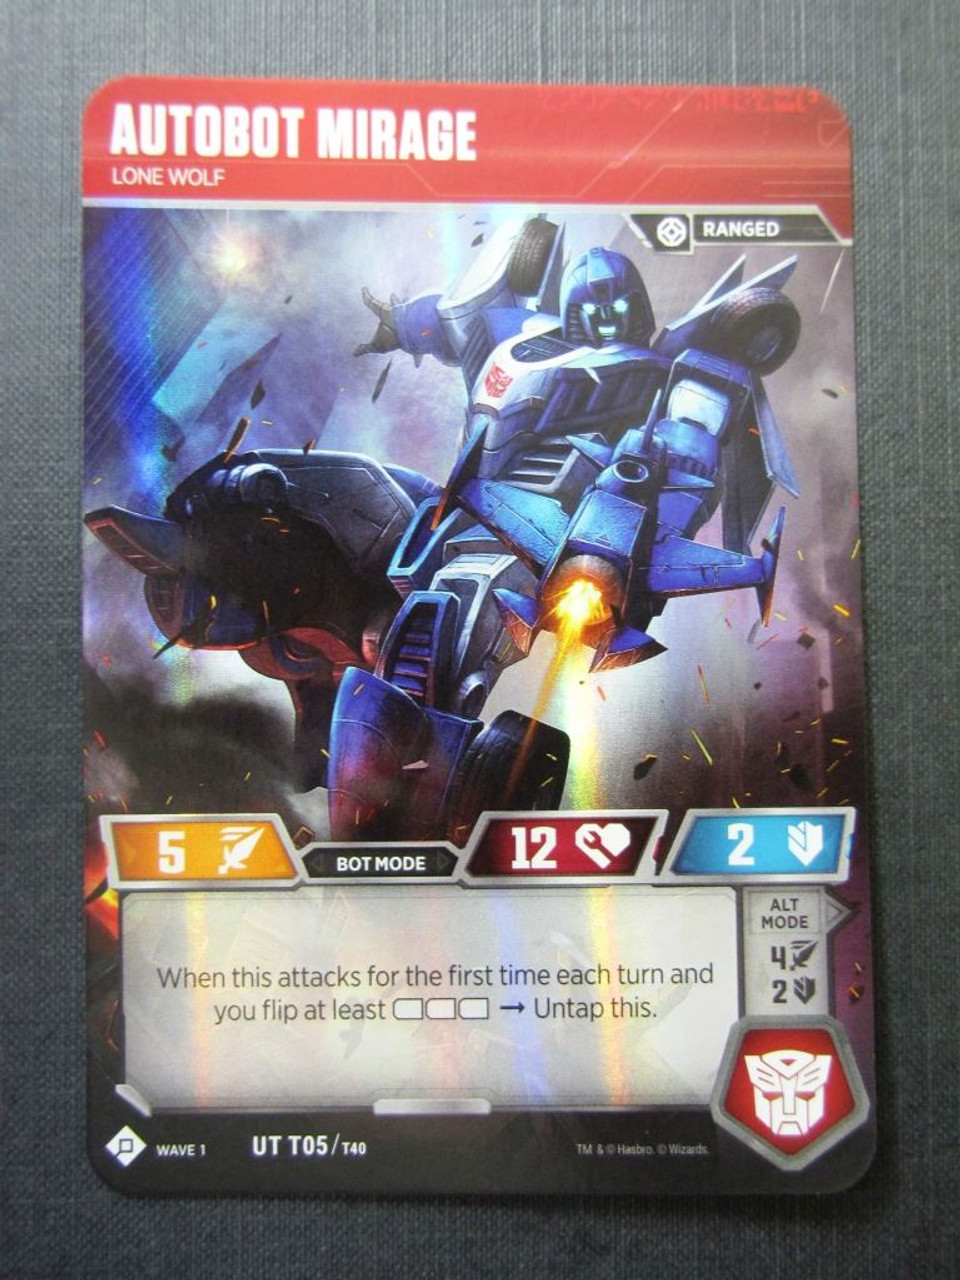 Autobot Mirage UT T05//T40 Transformers Cards # 7C10